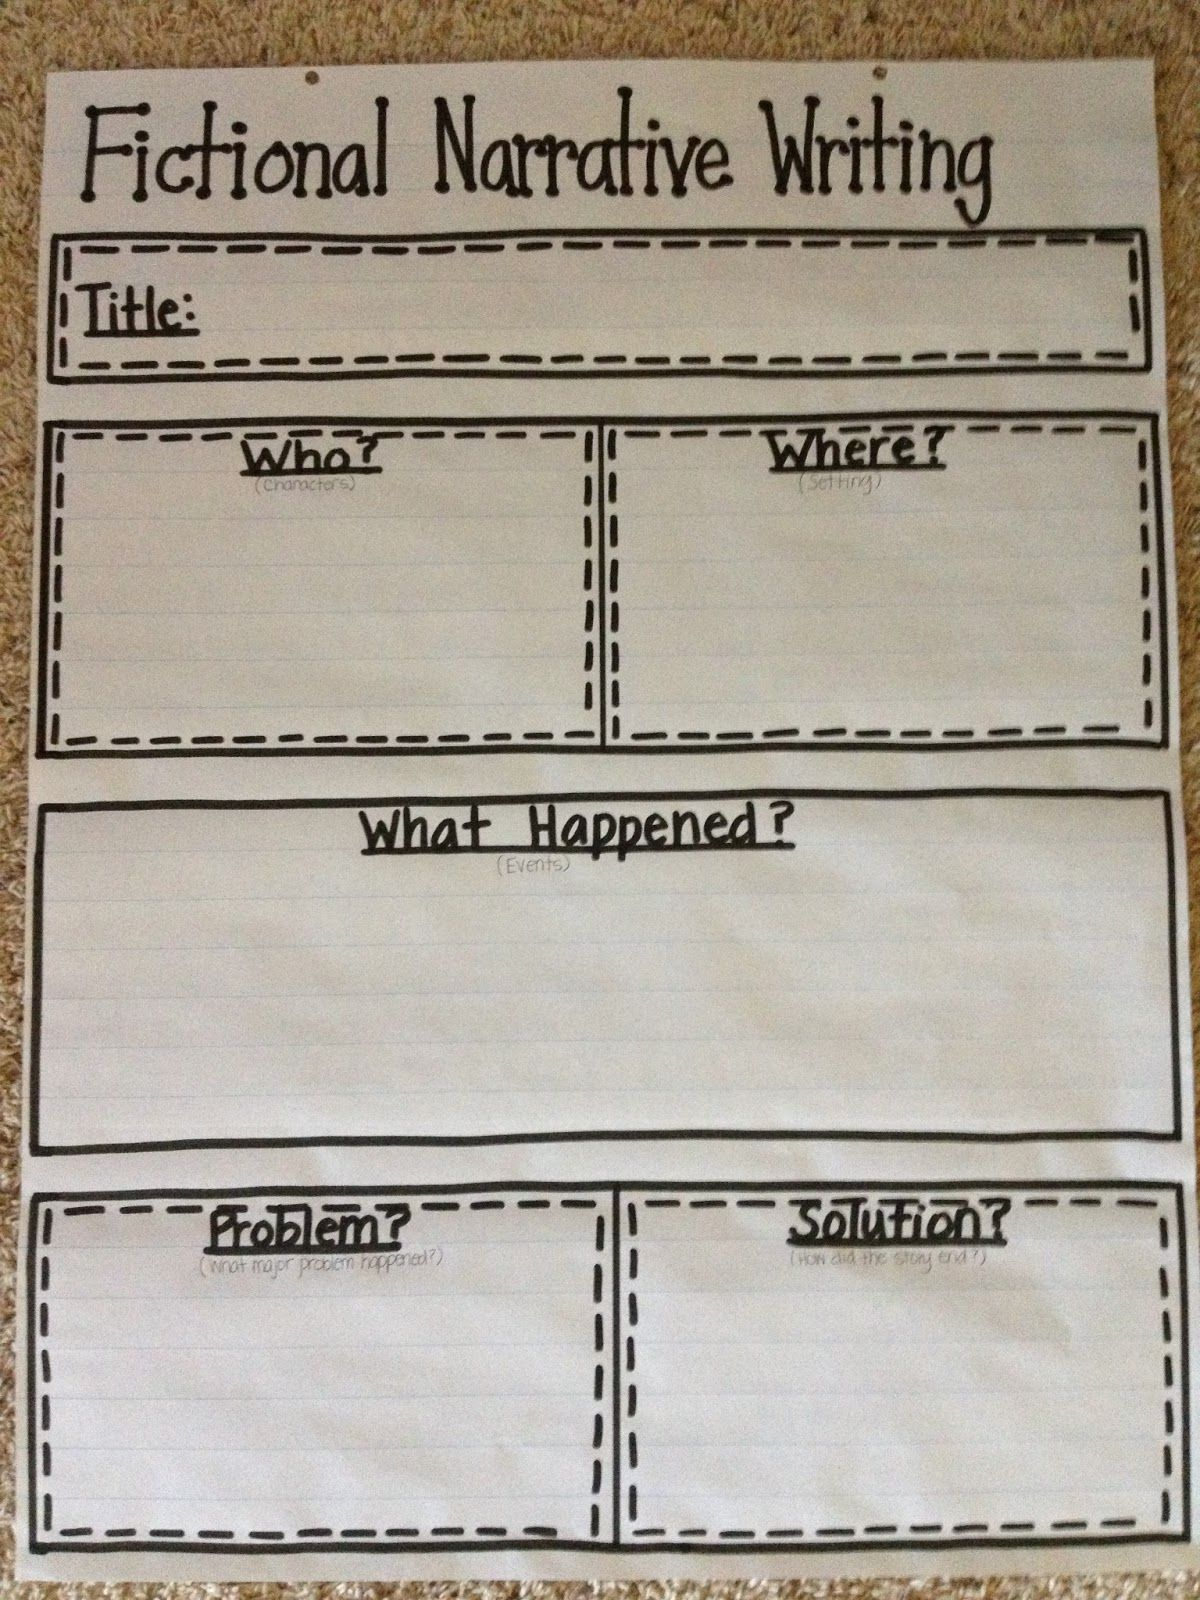 001 I plan on using this in my classroom, but I would modify